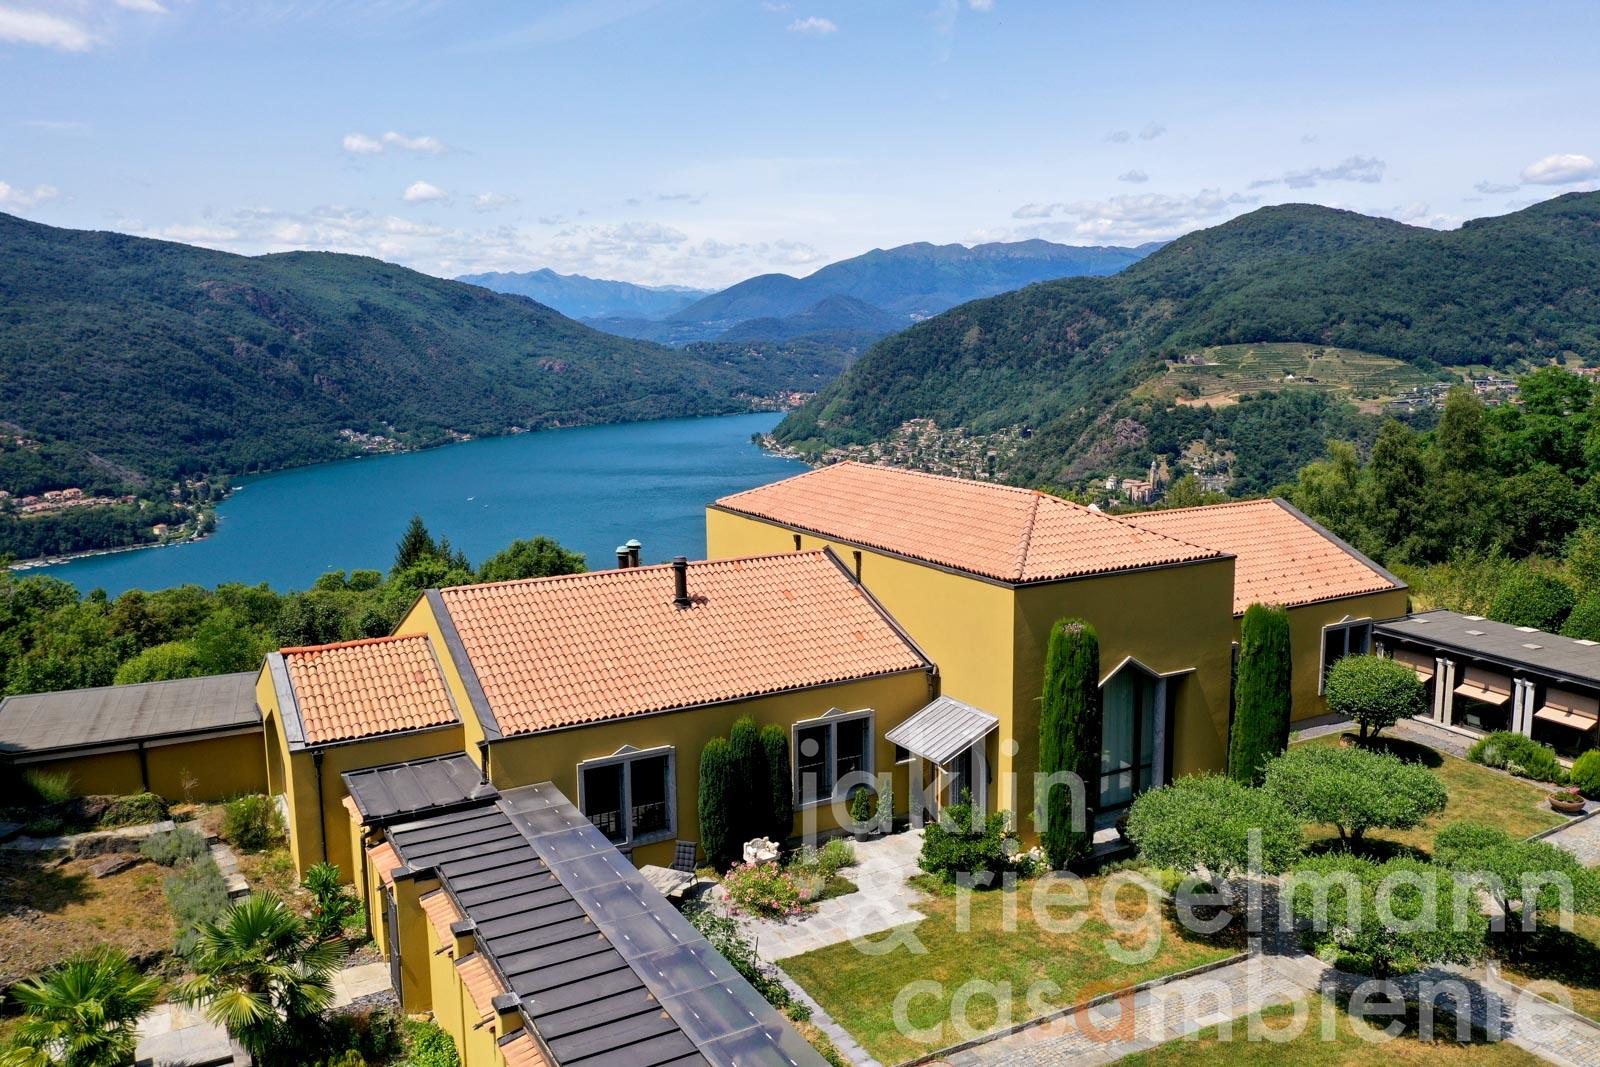 The extraordinary villa for sale with panoramic views of Lago di Lugano, well-kept garden and swimming pool